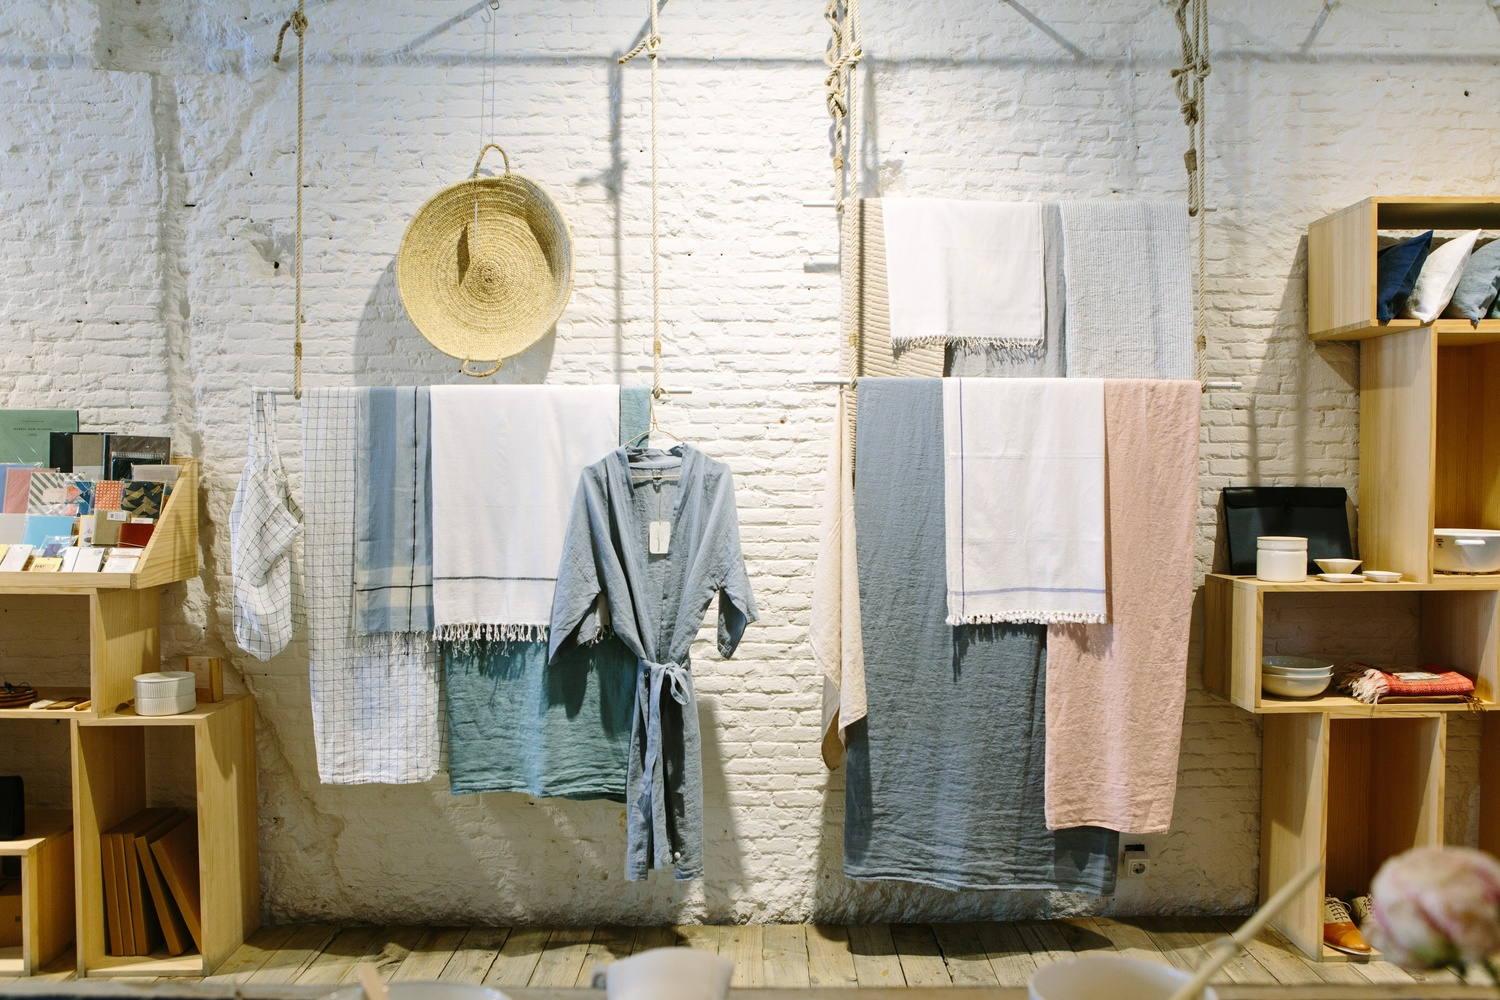 Towels and clothes hanging from a ceiling in an artistic interior - Möbel Preiss